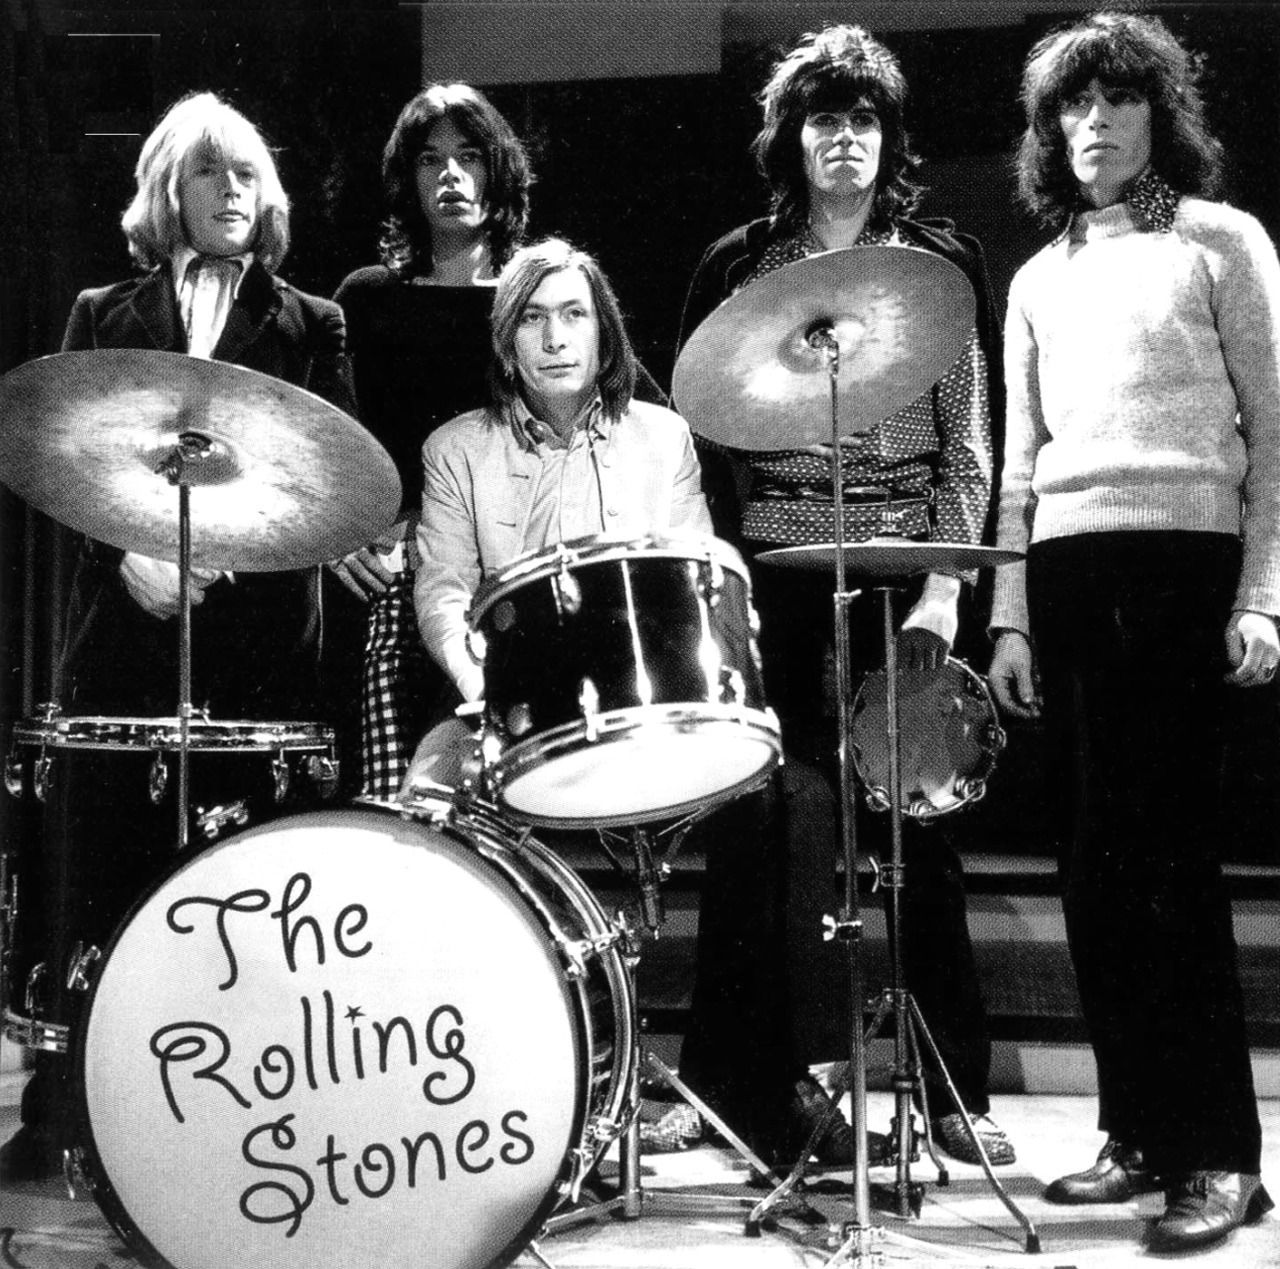 The best Charlie Watts stories and obituaries we've seen since yesterday including that infamous Mick Jagger punch.